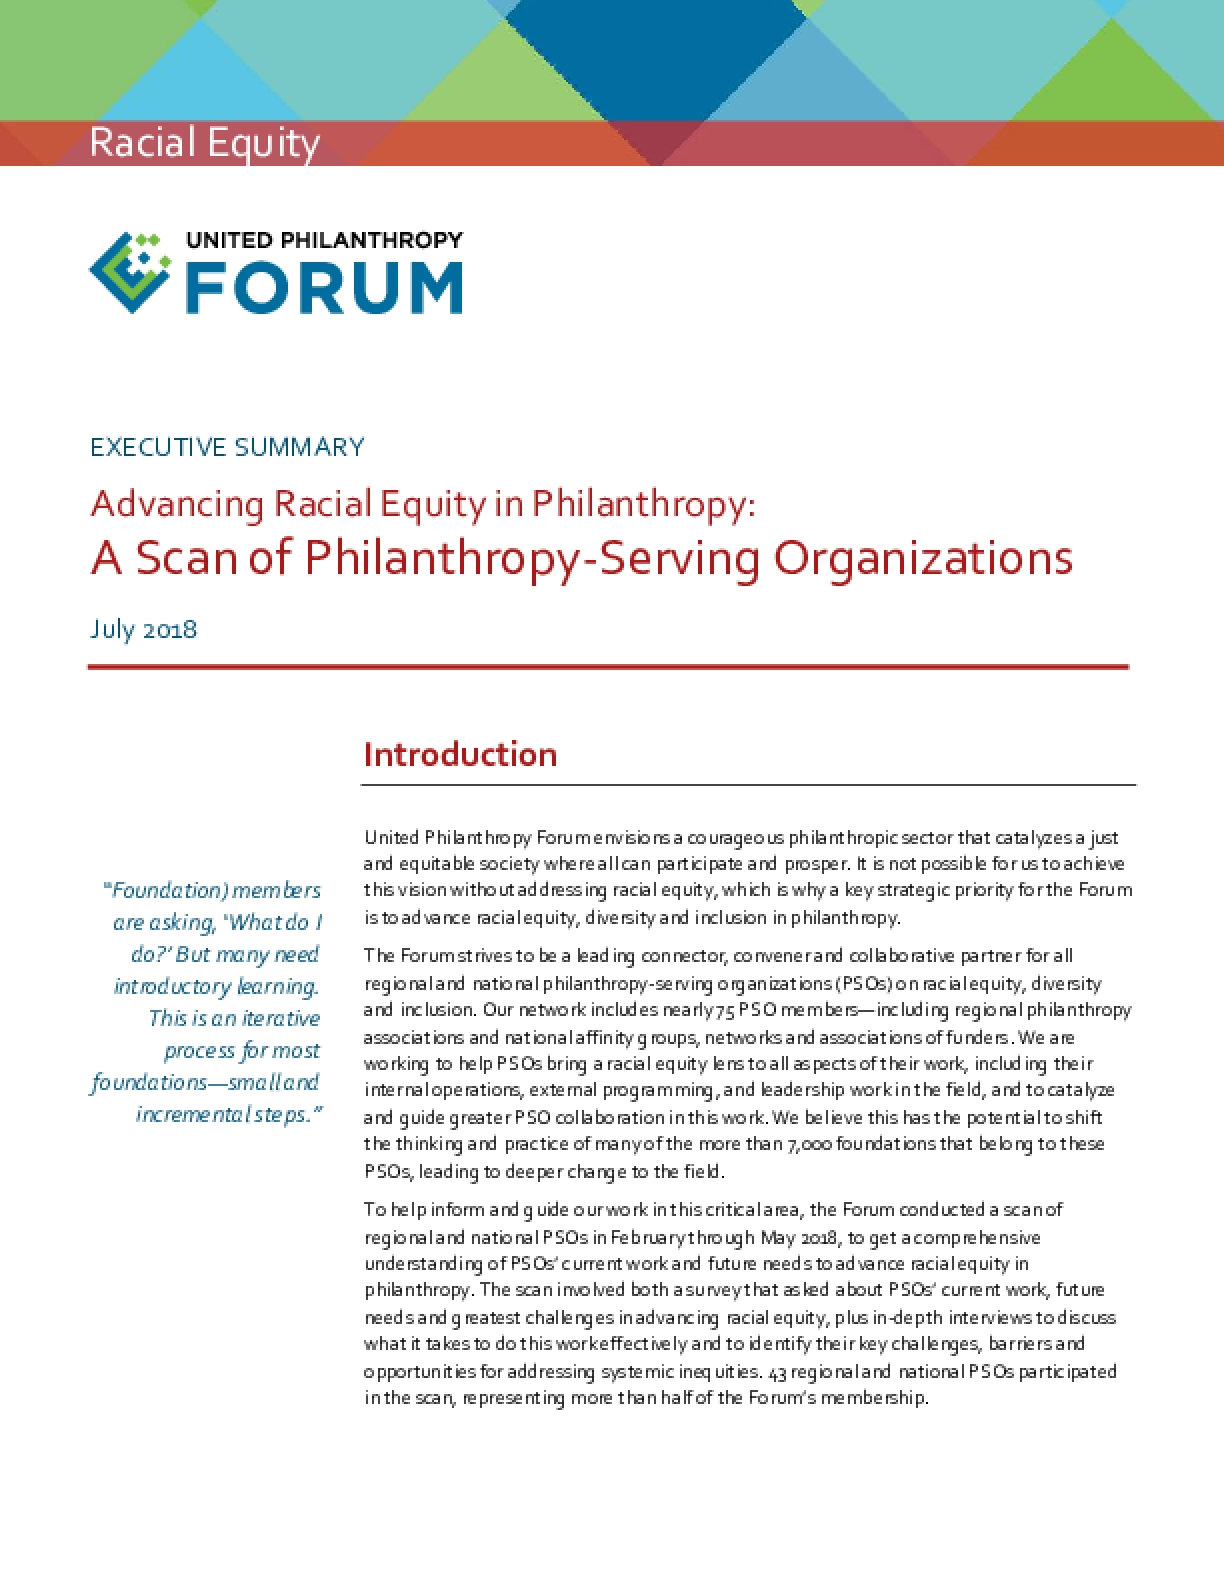 Advancing Racial Equity in Philanthropy: A Scan of Philanthropy-Serving Organizations - Executive Summary